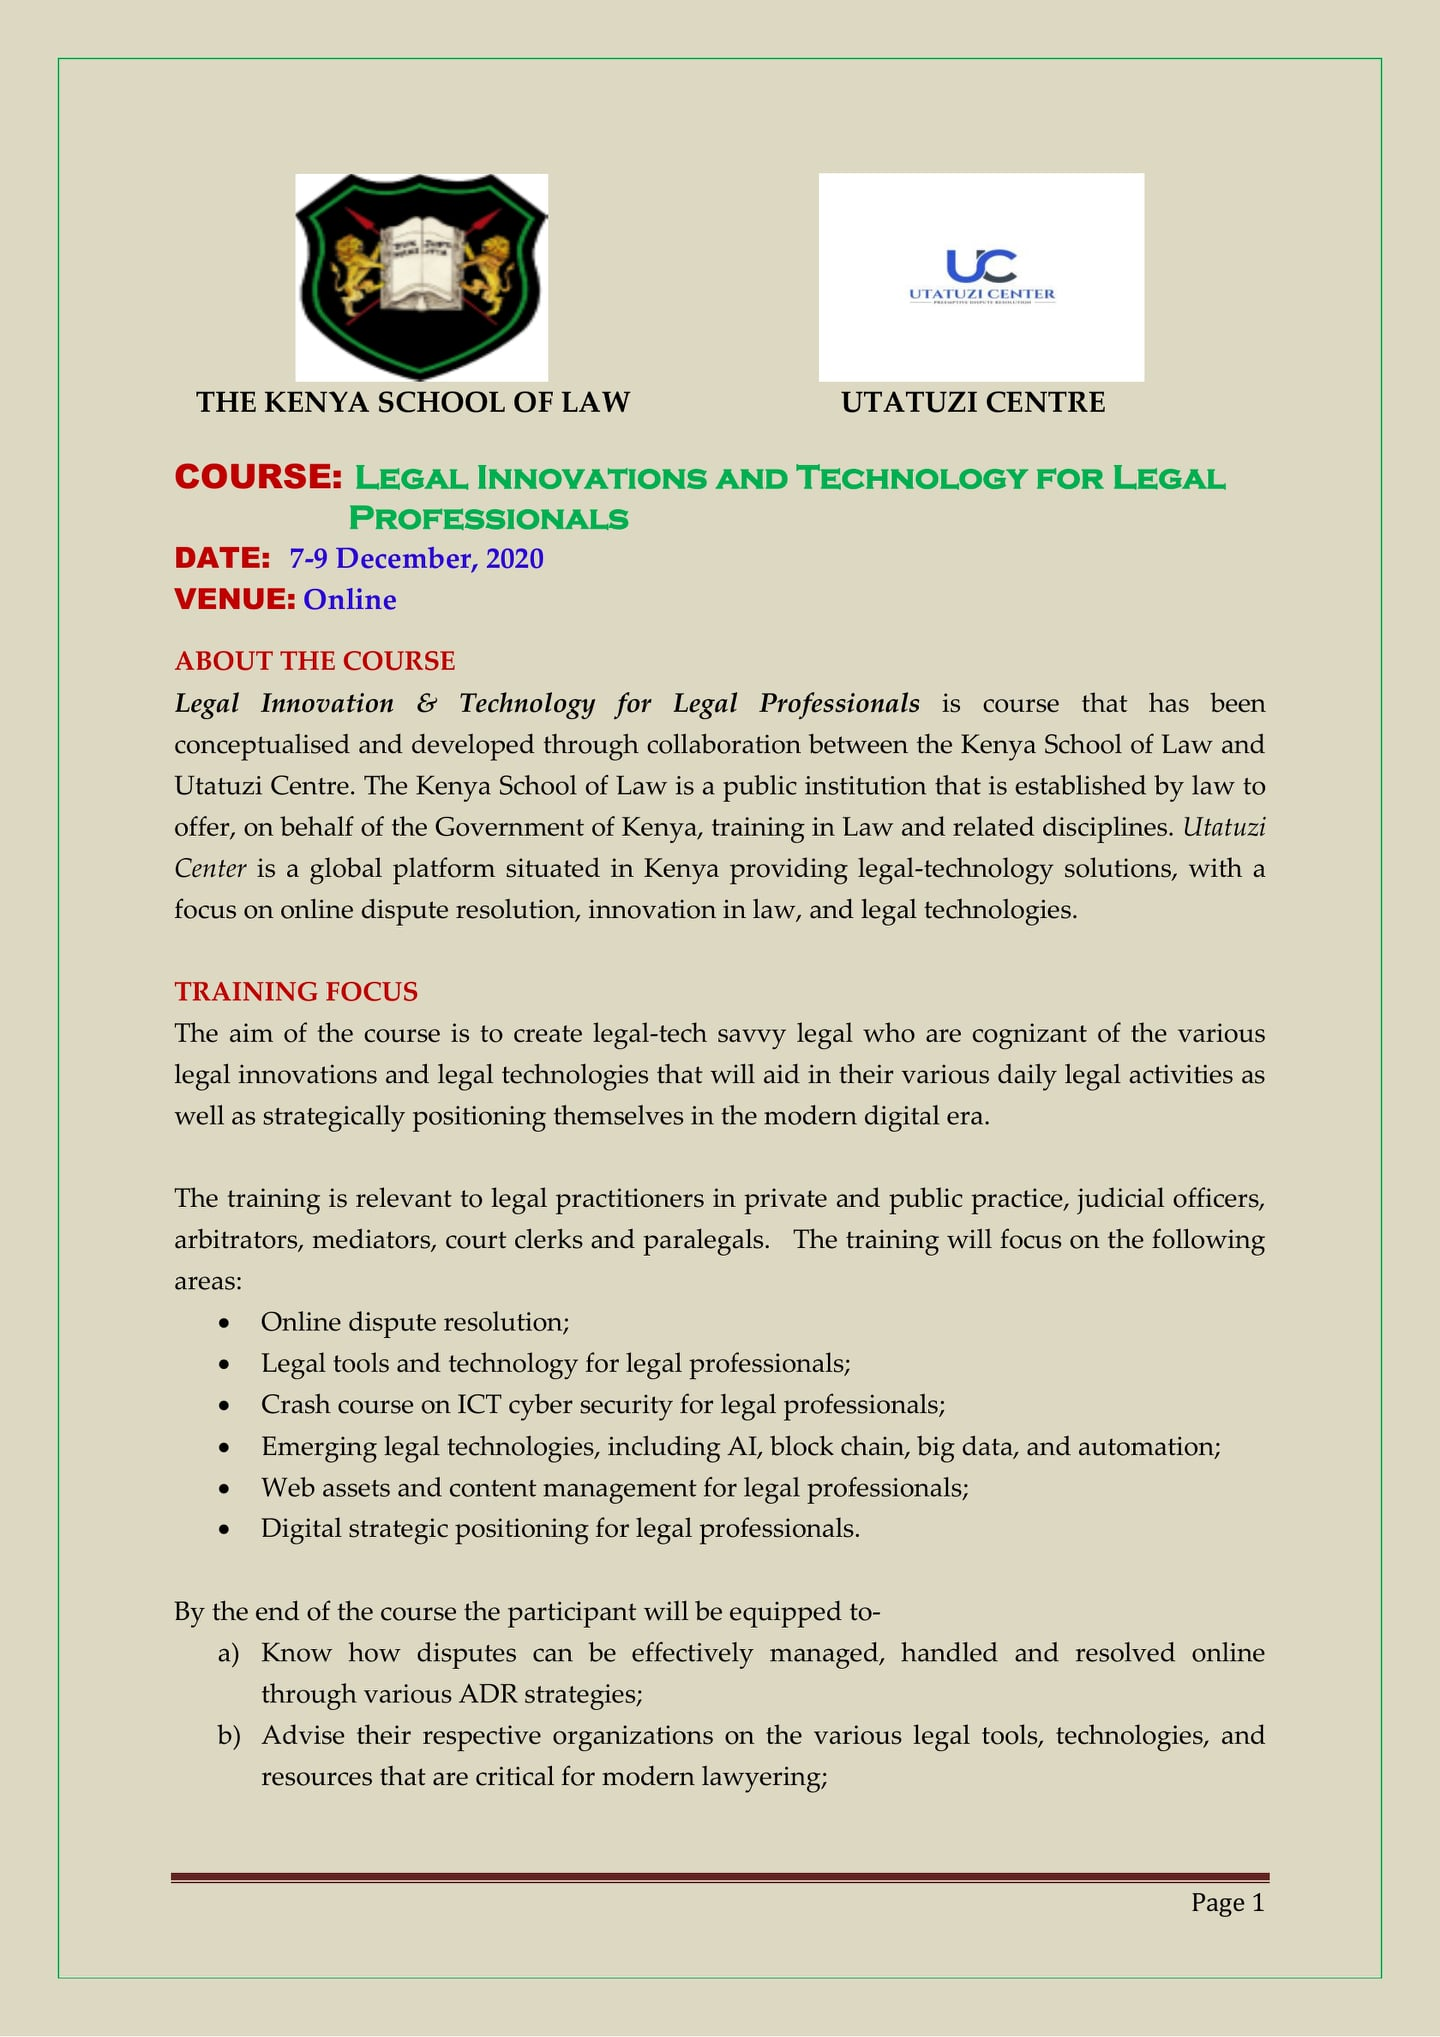 Utatuzi Center Partners With The Kenya School Of Law To Offer Legal Innovations And Legal Technology Training